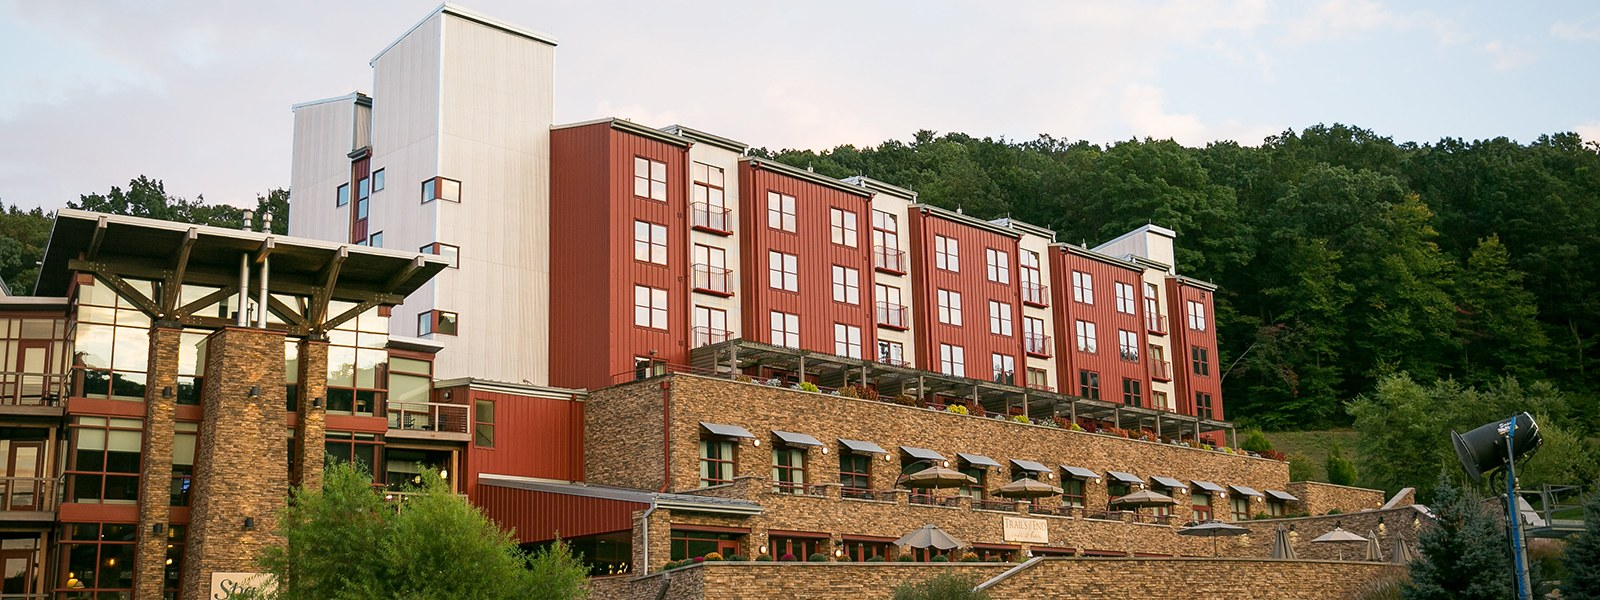 South Tower of the Hotel in Summer